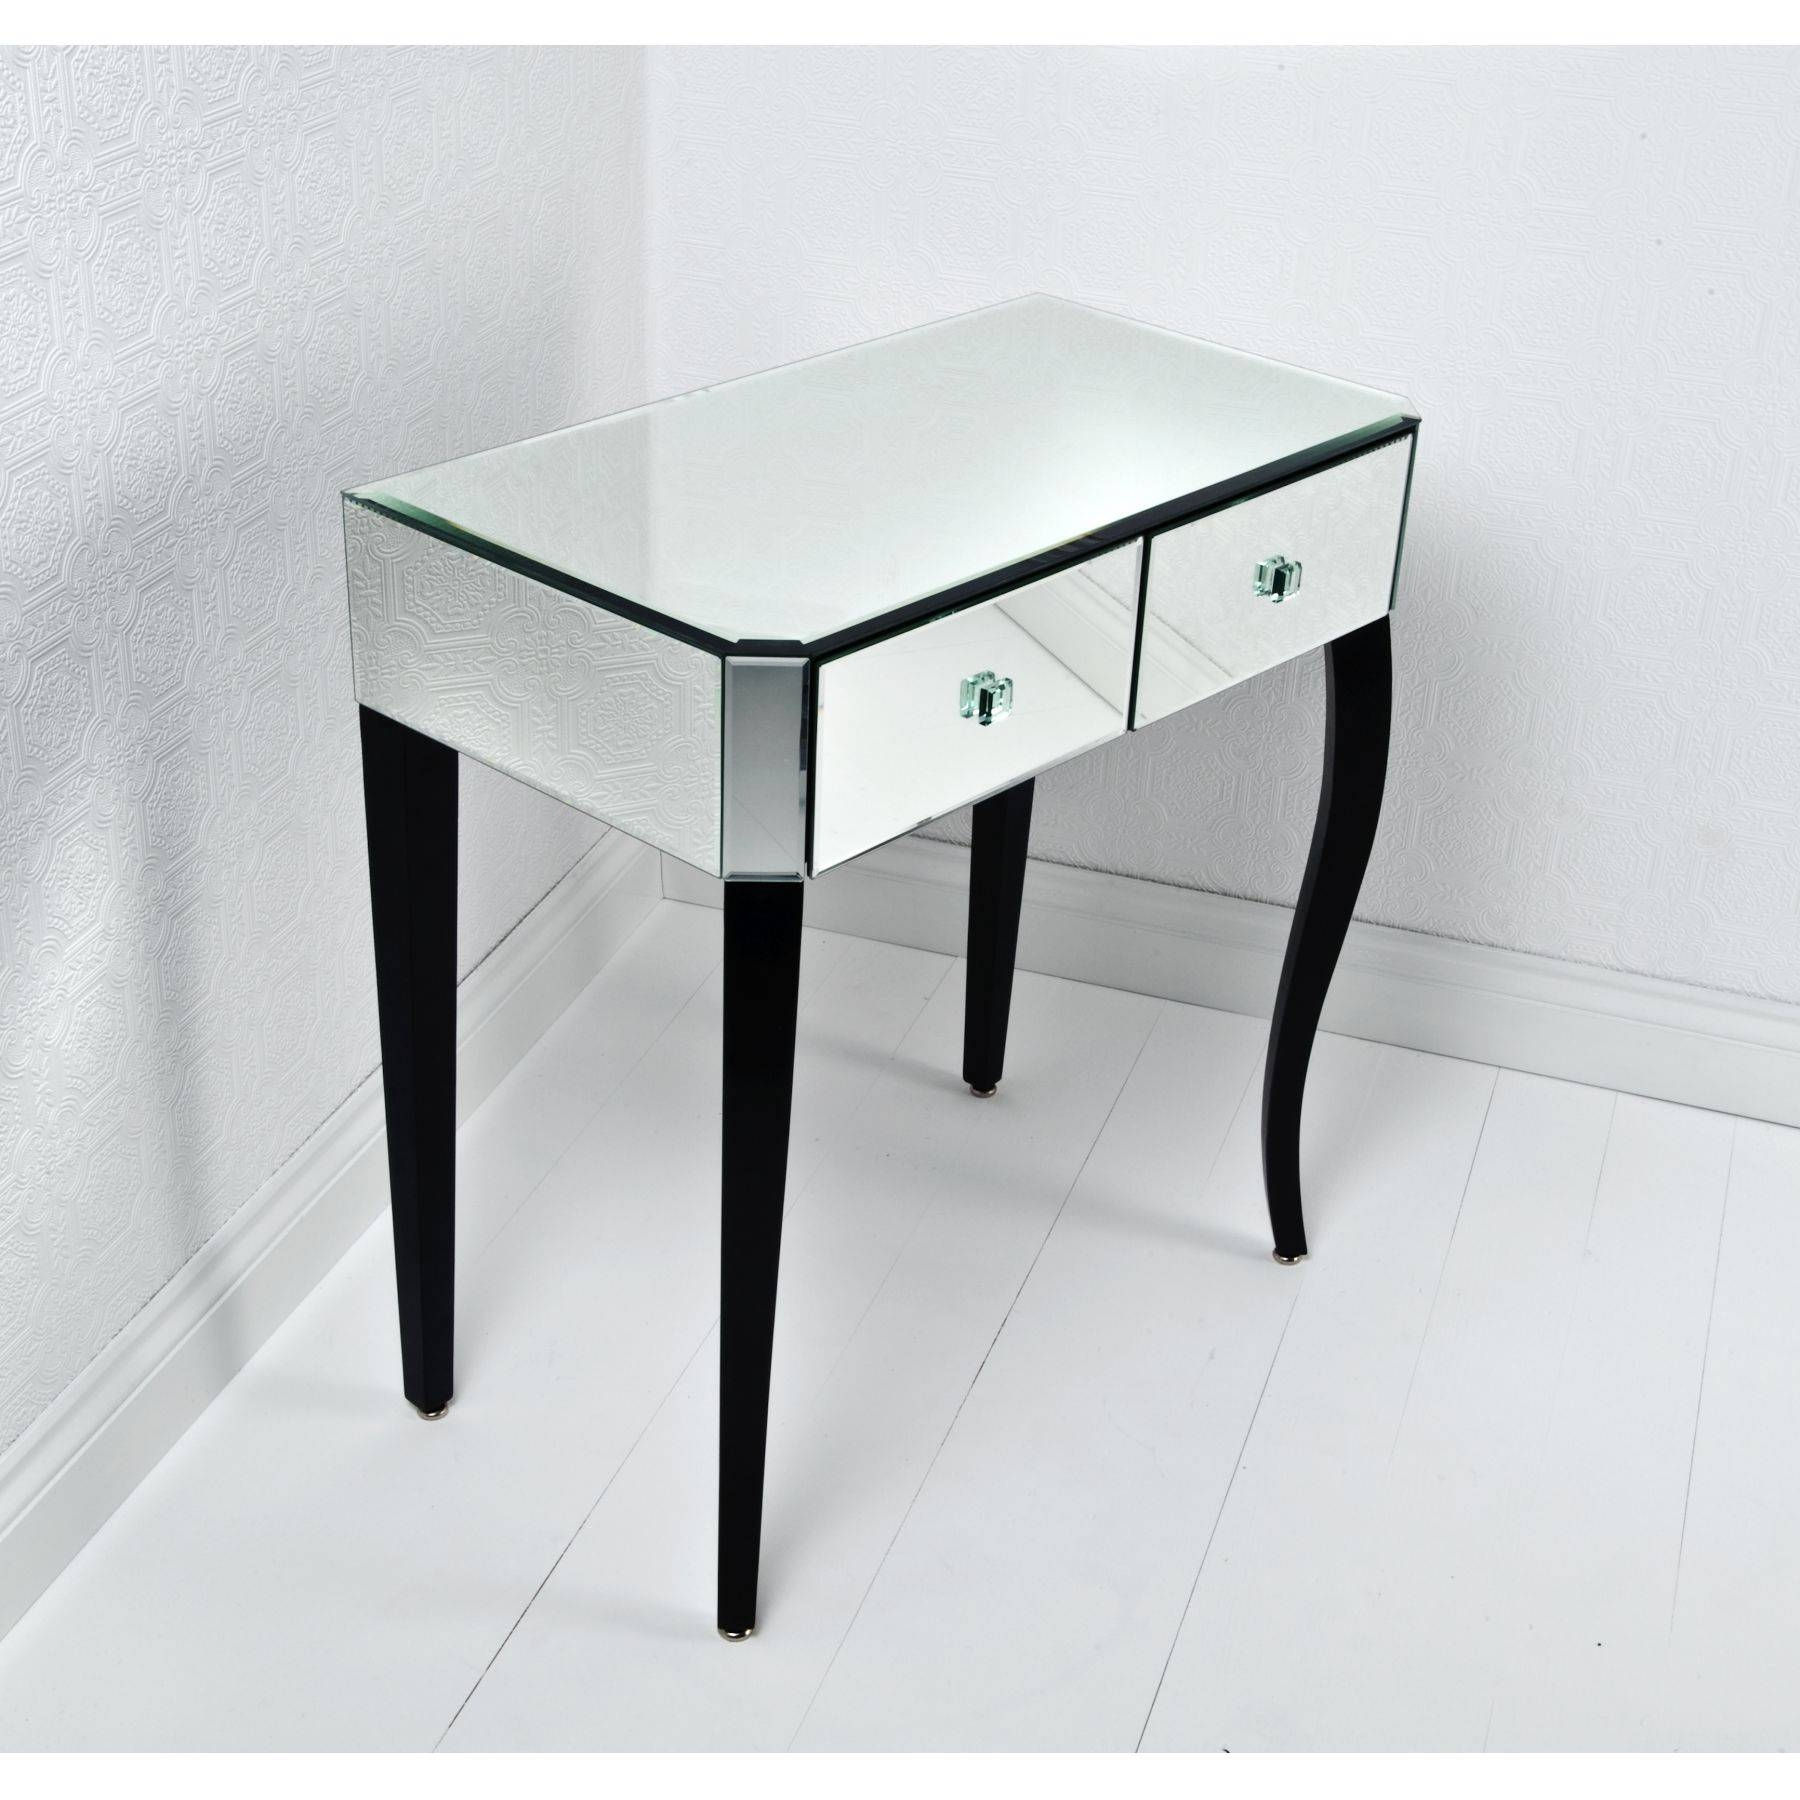 Mirrored Table Comes With Luxury And Elegant Look | Home Furniture with regard to Small Table Mirrors (Image 12 of 25)